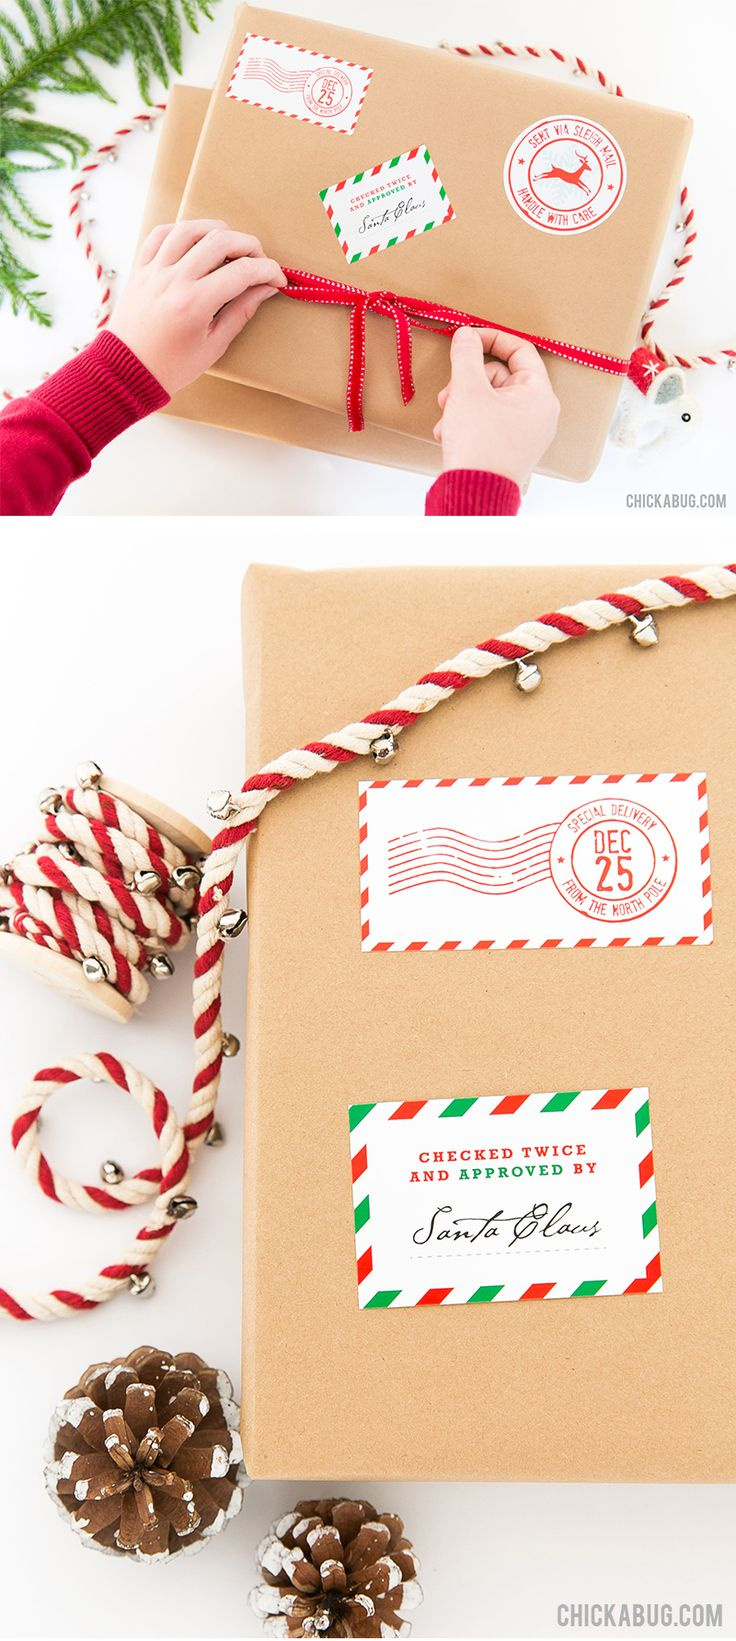 Make Christmas gift wrapping MAGICAL! These adorable stickers are the perfect finishing touch for your Christmas presents, to make them look like they came straight from Santa's workshop!